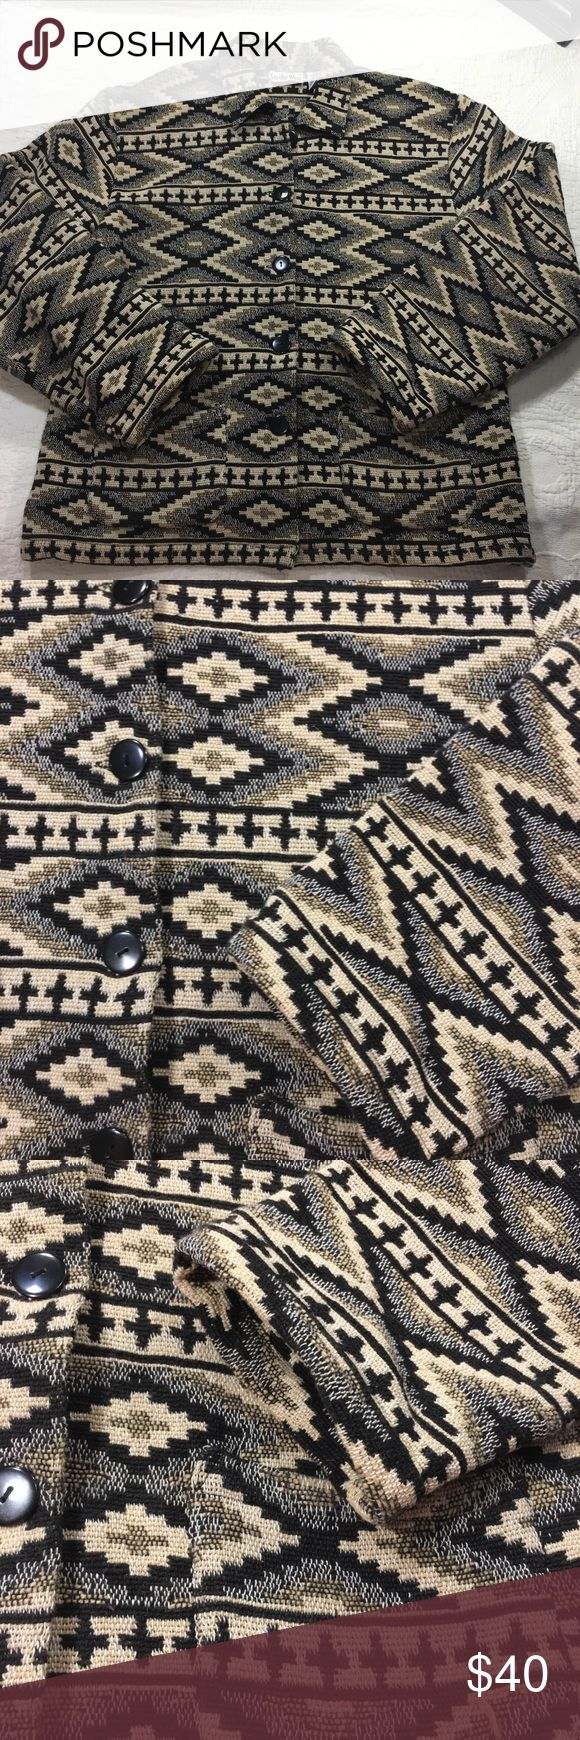 """Size small Navajo Aztec Print Tapestry Blazer coat Good overall condition.  No flaws noted.    Women's Aztec Navajo Print Tapestry 100% Cotton Long Sleeve Blazer.     Measurements are approximate with the garment laid flat  Bust 21"""" Waist 20.5"""" Hip 21"""" Sleeve 23"""" Shoulder to hem 25"""" Studio West Jackets & Coats Blazers"""